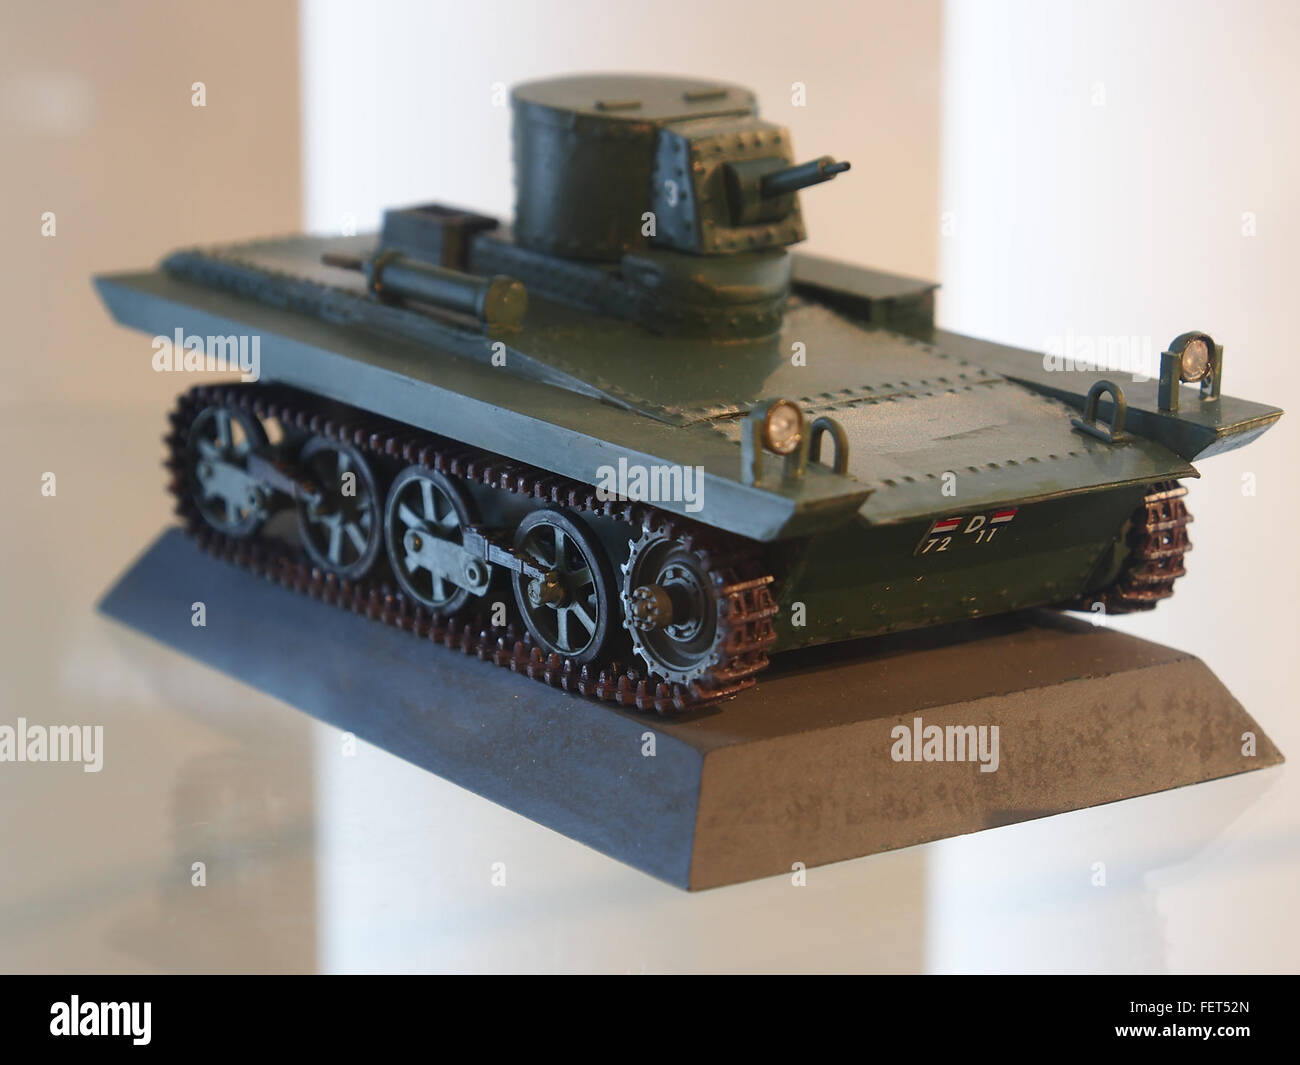 Model at the Dutch Cavalry Museum, Bernhardkazerne pic3 - Stock Image